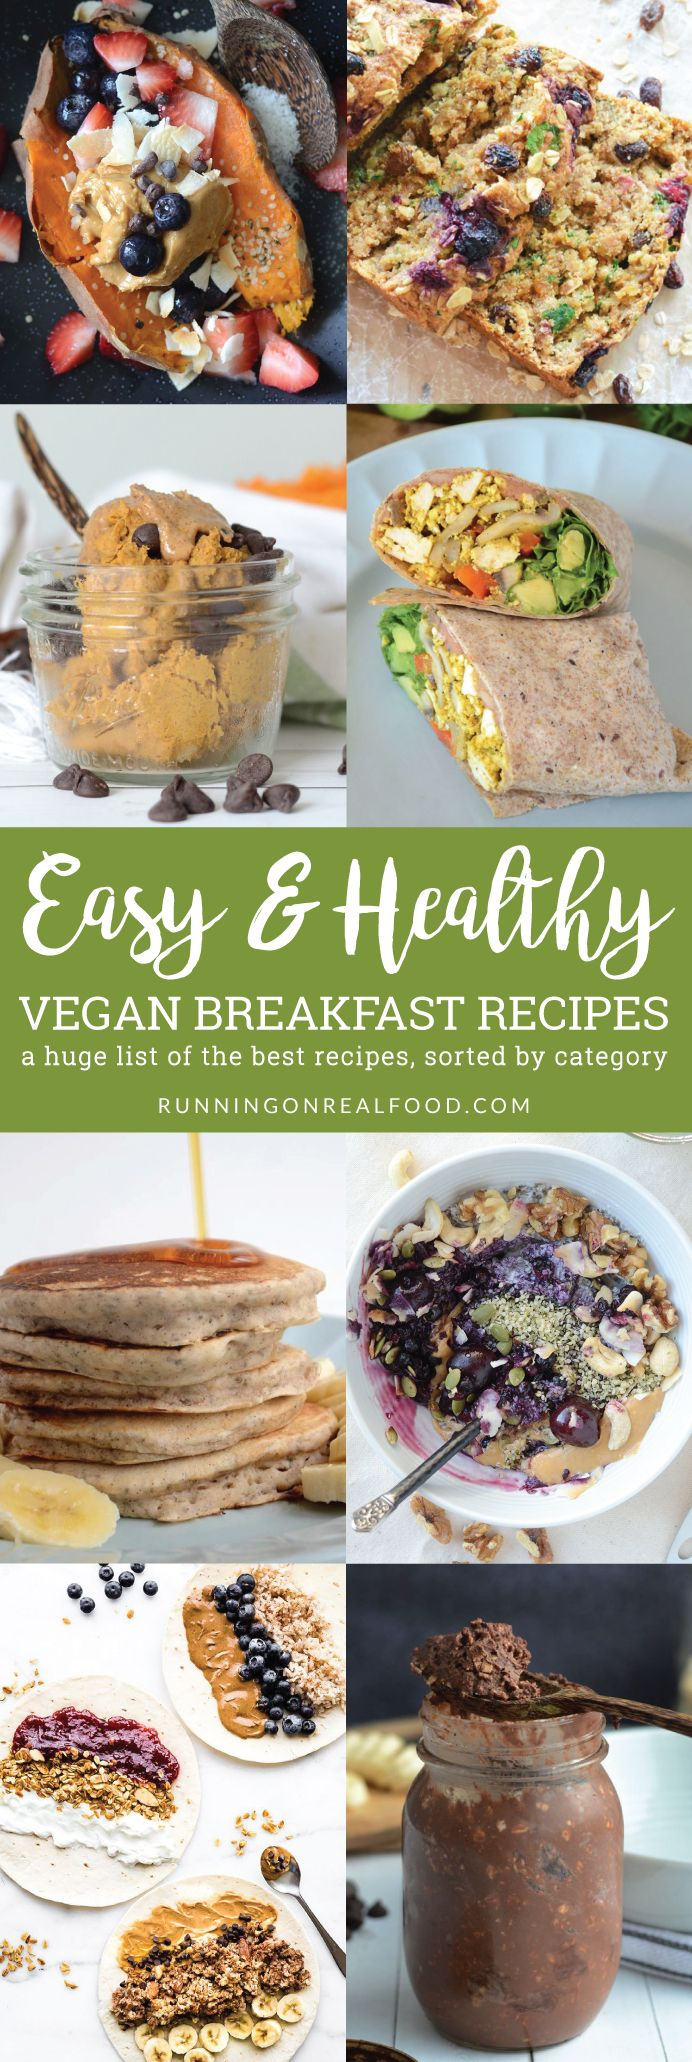 Here Are 29 Amazing Breakfast Recipes That Range From Hot To Cold Easy To Skilled And Few To Many Ingred Healthy Vegan Breakfast Vegan Breakfast Recipes Food